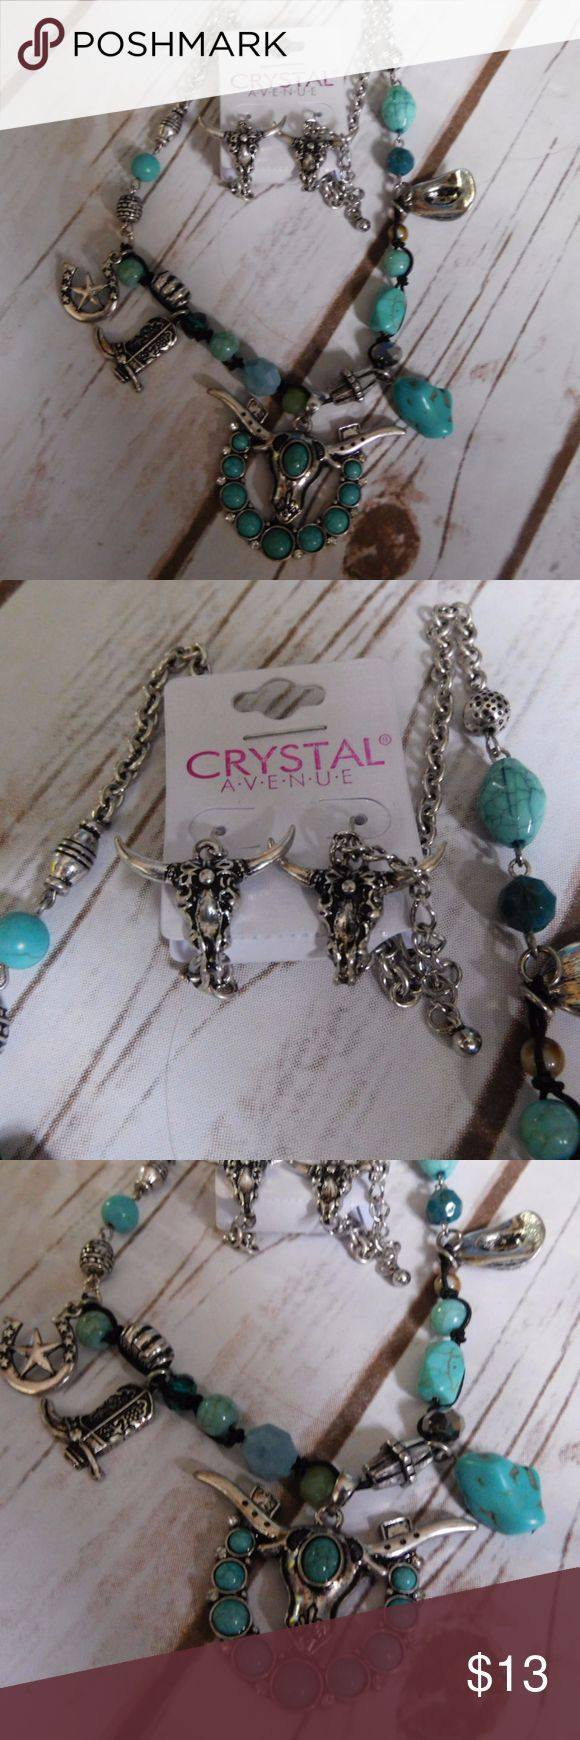 """Bead Encrusted Bull Ornate Charm Necklace Set Approx. 18""""  length Lobster claw clasp with 3""""  extender Lead/Nickel compliant  Earrings Drop Approx. 1.25"""" Fish hook Jewelry Necklaces"""